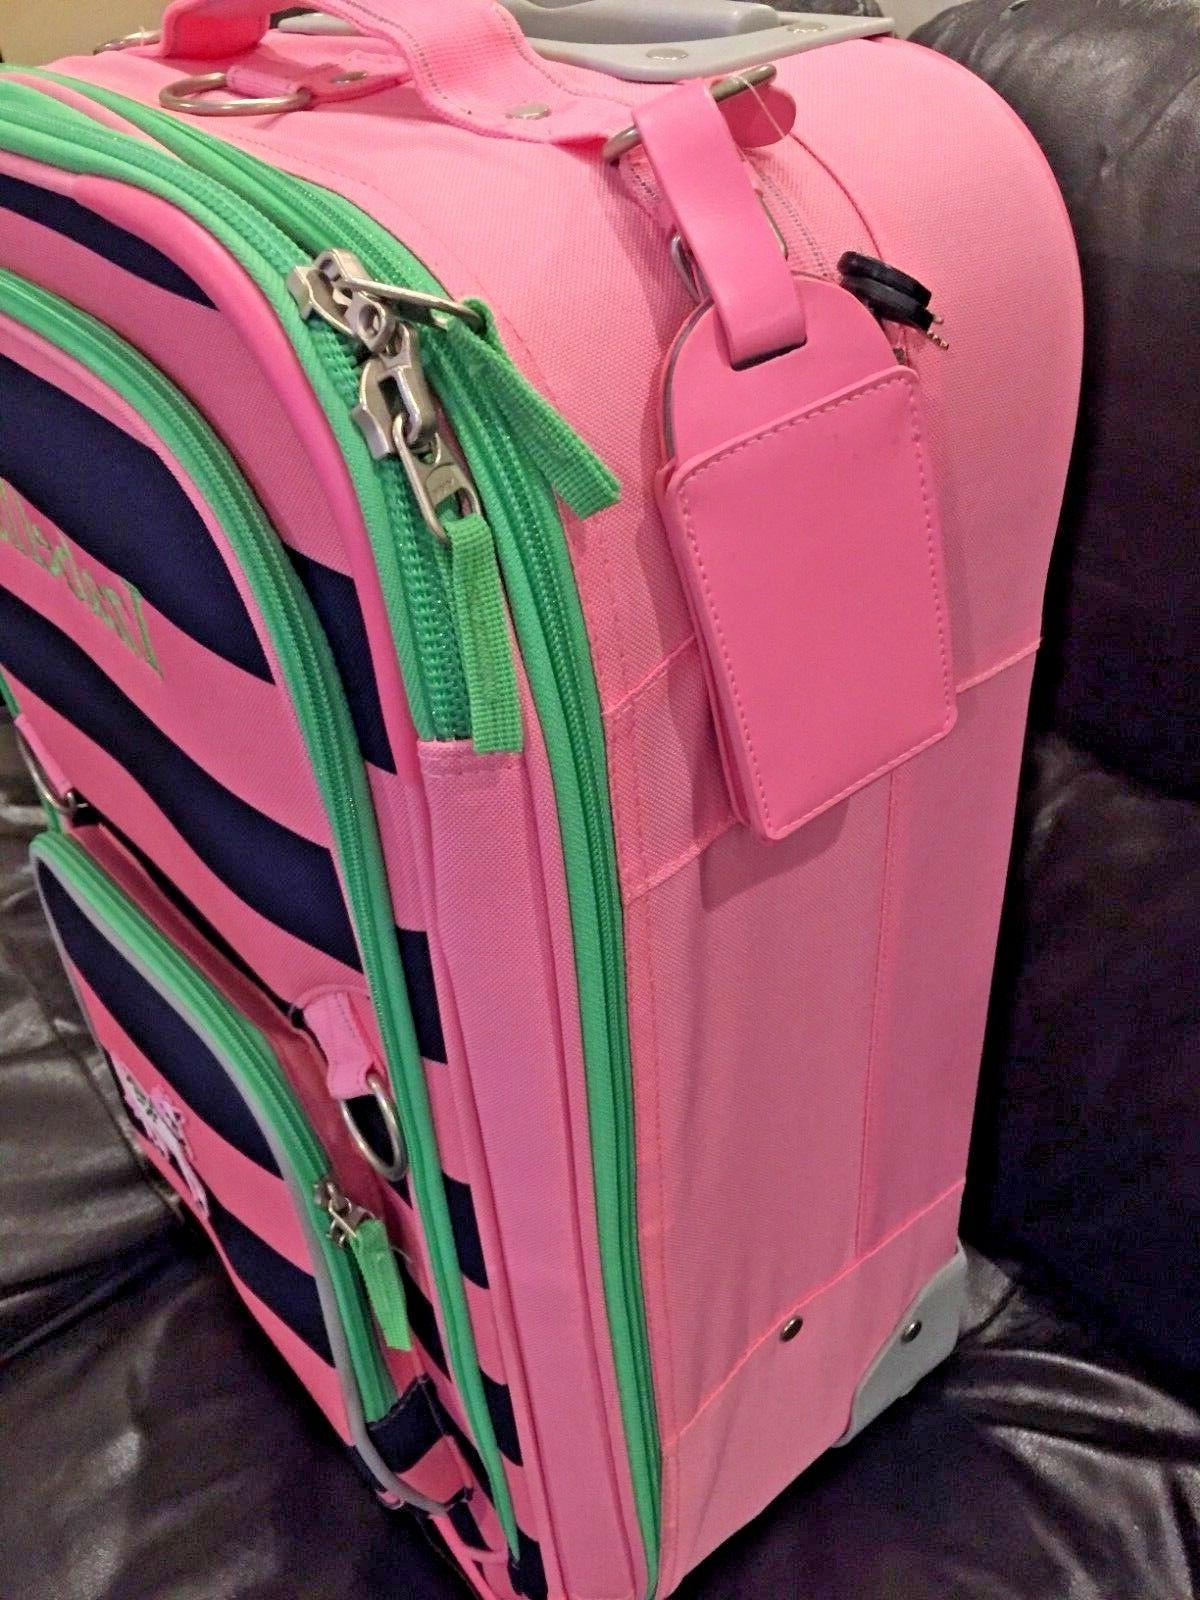 NEW Pottery Fairfax Striped Suitcase Luggage